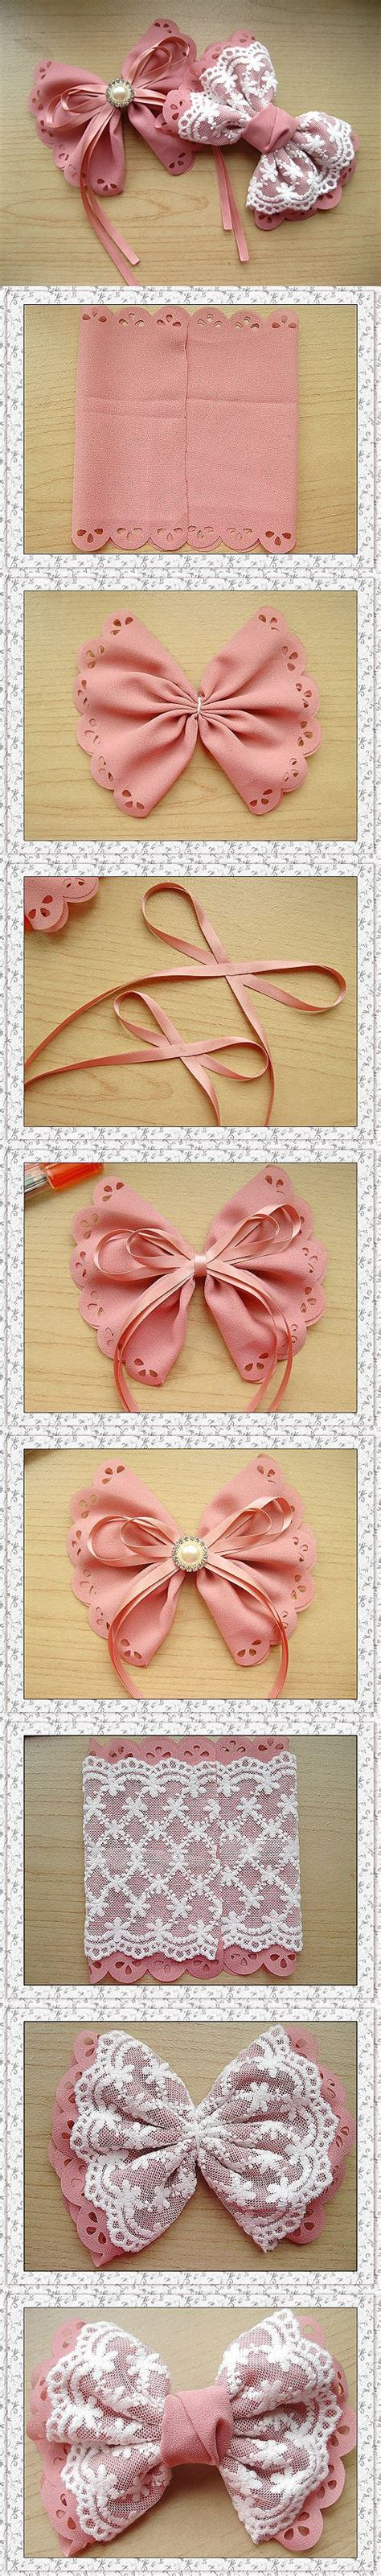 how to your to bow how to make your own lovely bow hairpin step by step diy tutorial picture